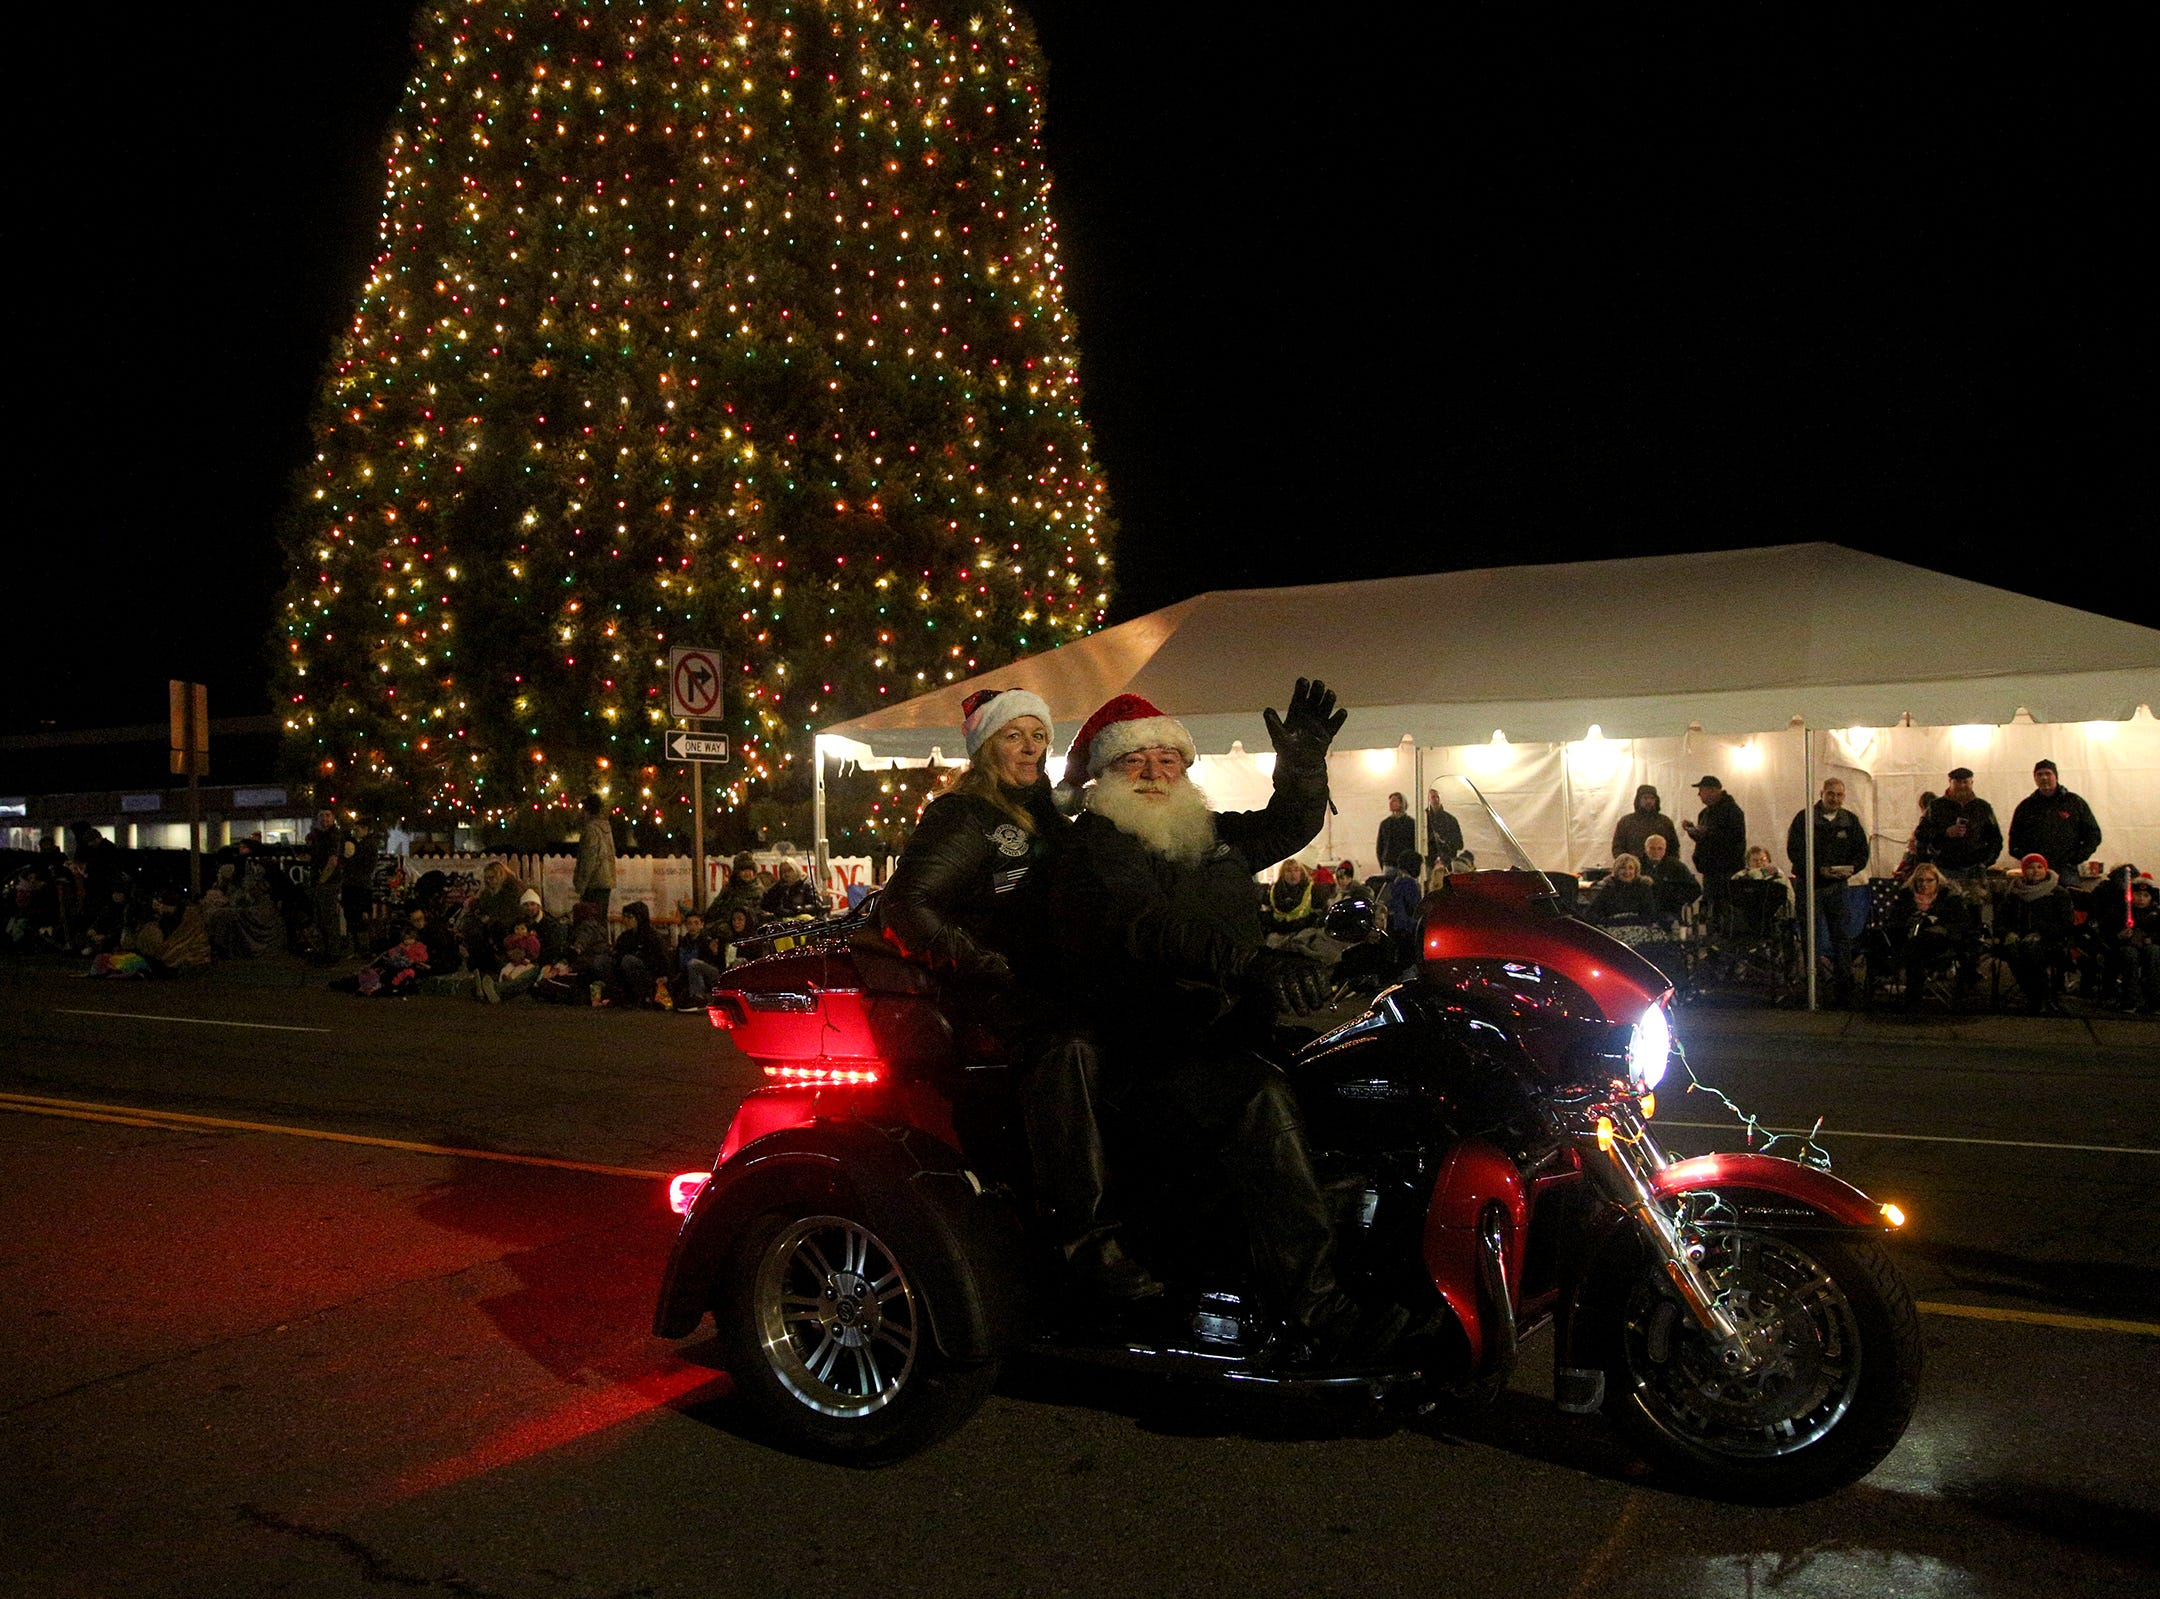 Motorcyclists ride through the Keizer Holiday Lights Parade in Keizer on Saturday, Dec. 8, 2018.